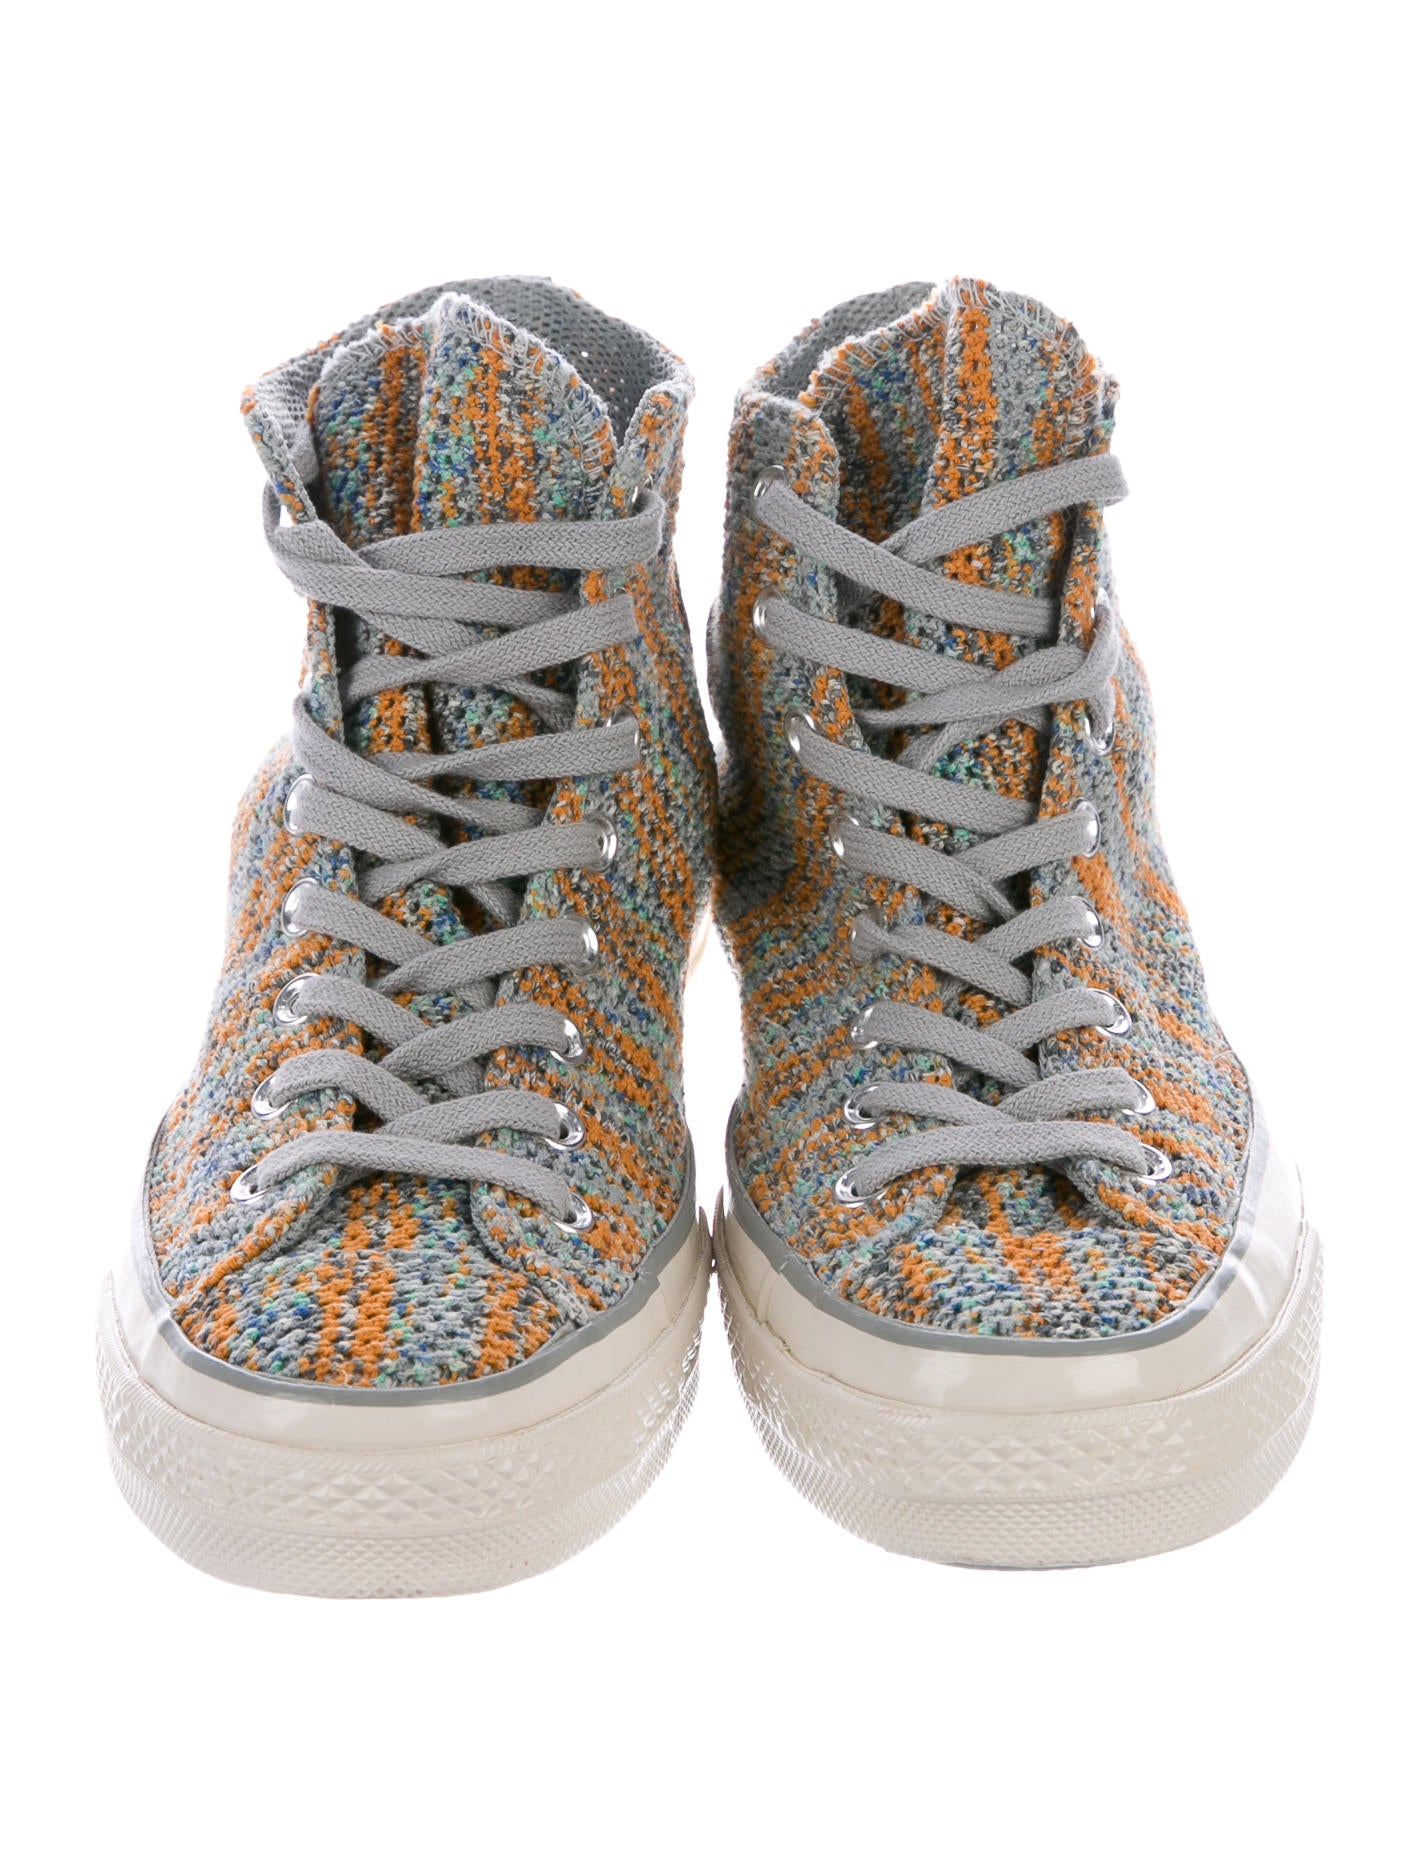 missoni x converse knit high top sneakers shoes